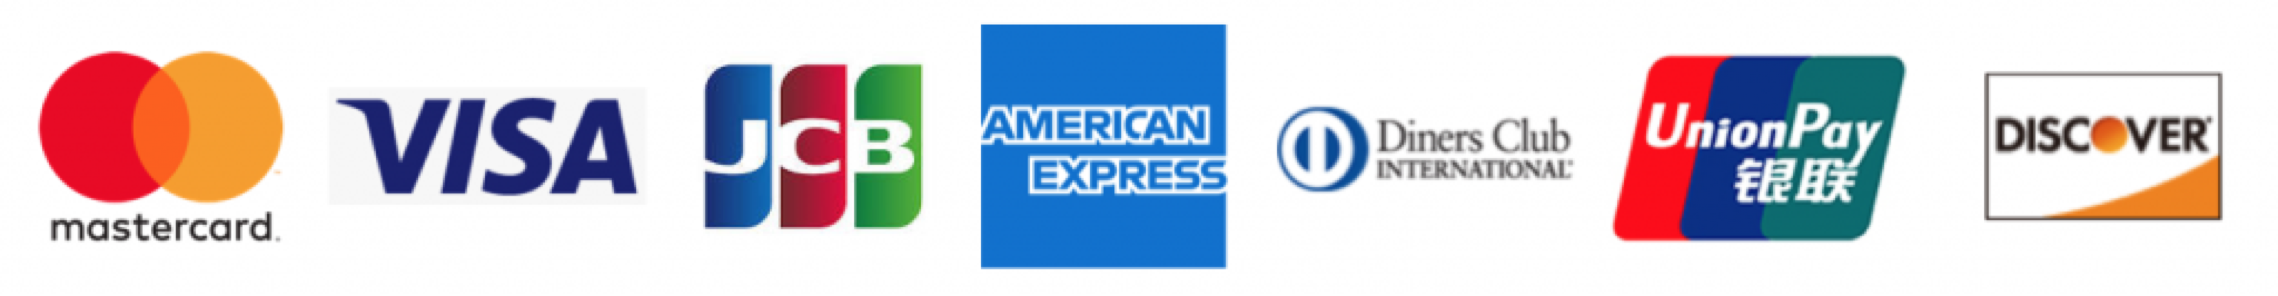 mastercard VISA JCB AMERICAN EXPRESS DinersClub UnionPay DISCOVER